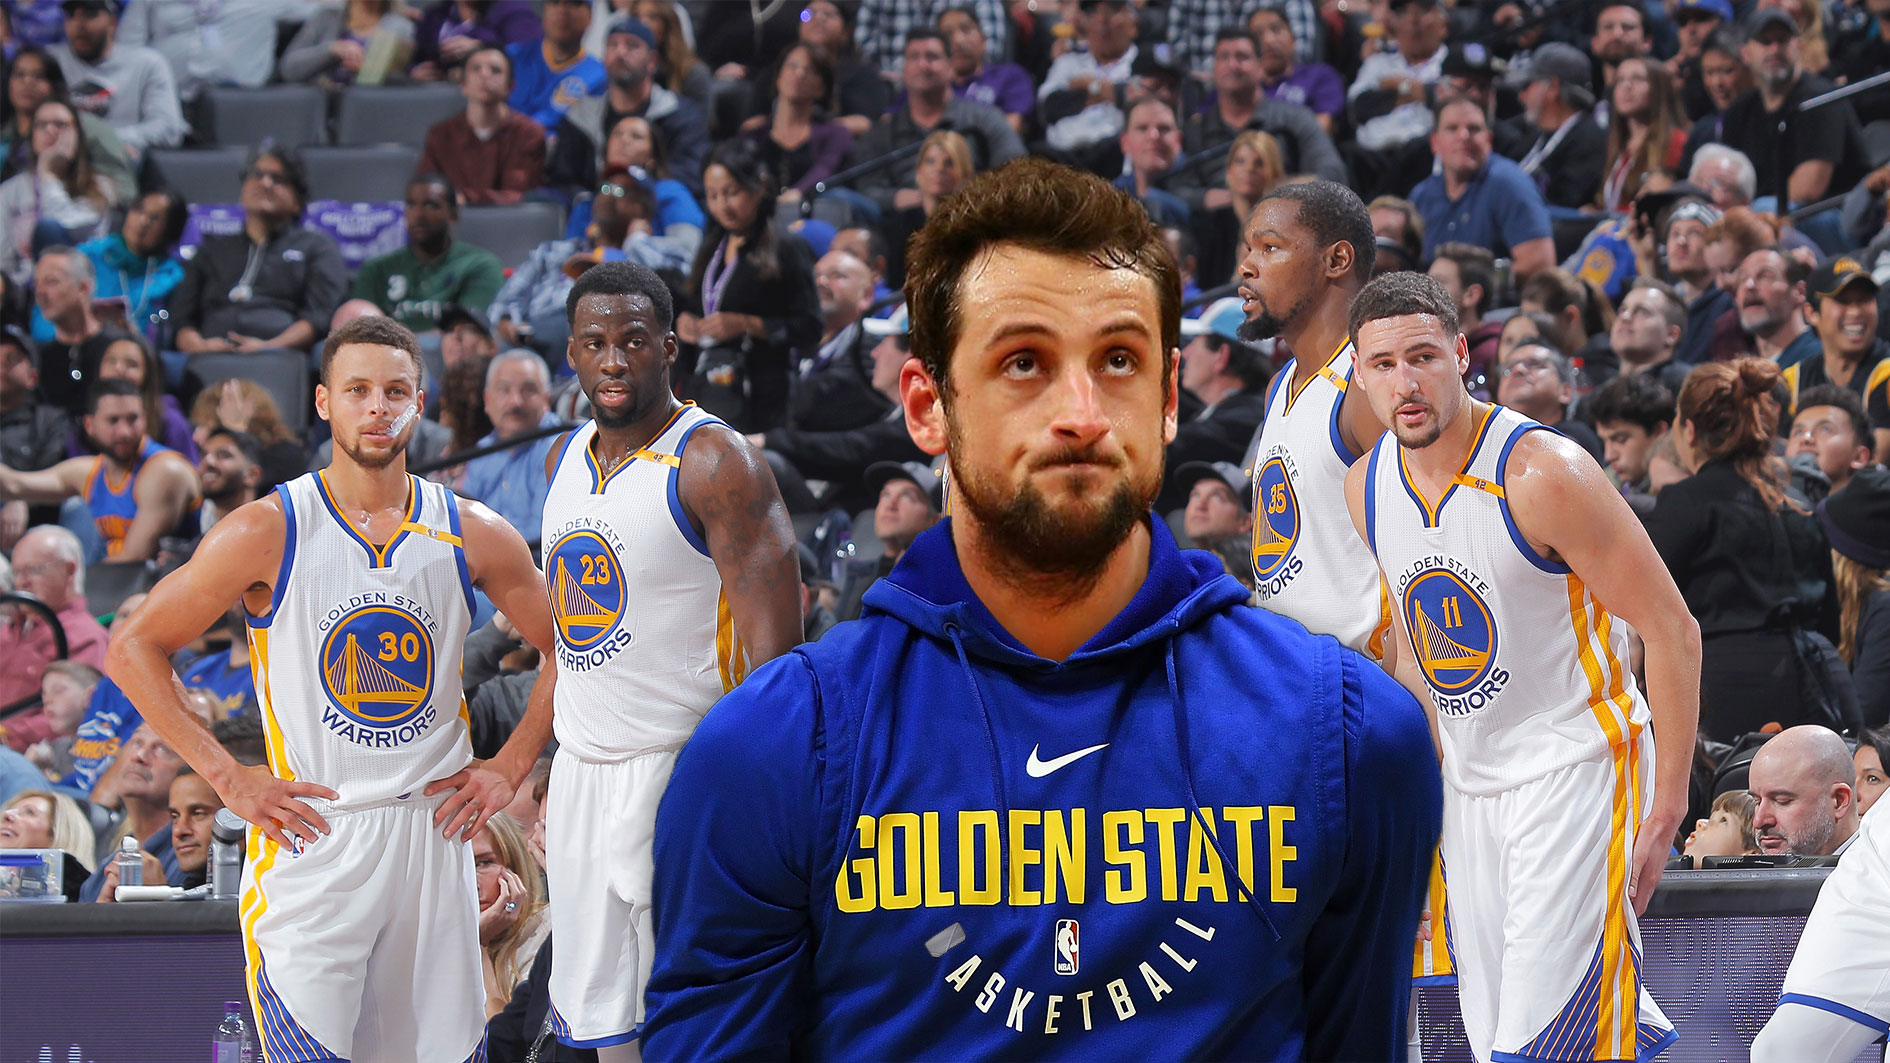 Warriors needs to trade back Marco Belinelli from the San Antonio Spurs